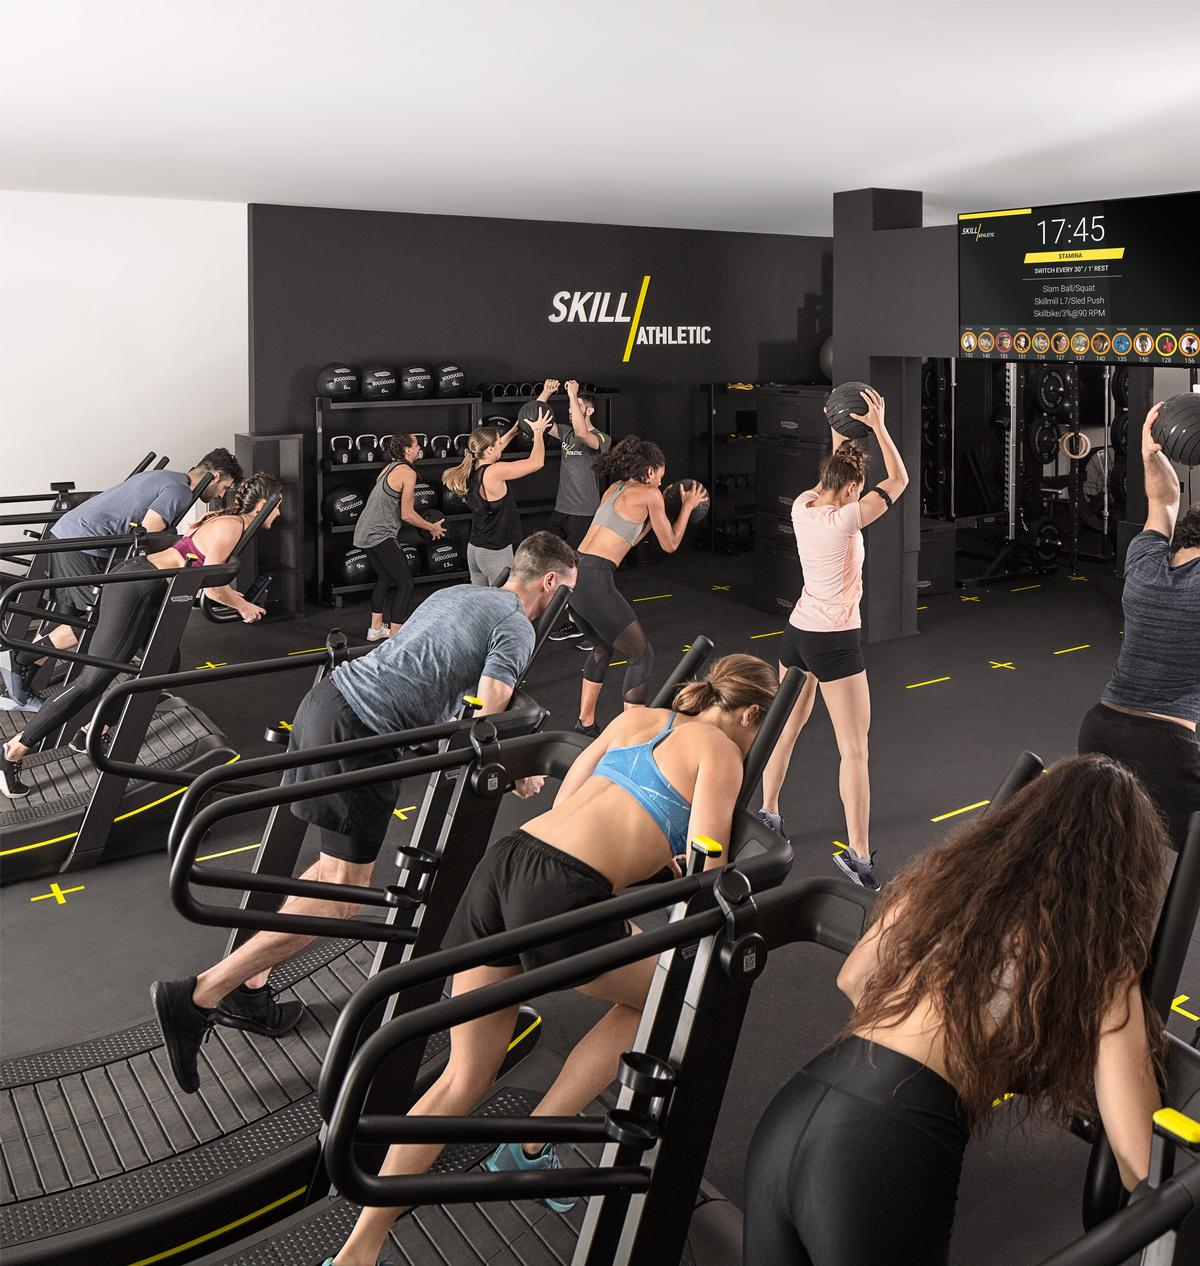 In-gym classes can be streamed to members to engage them in working out at home / Technogym